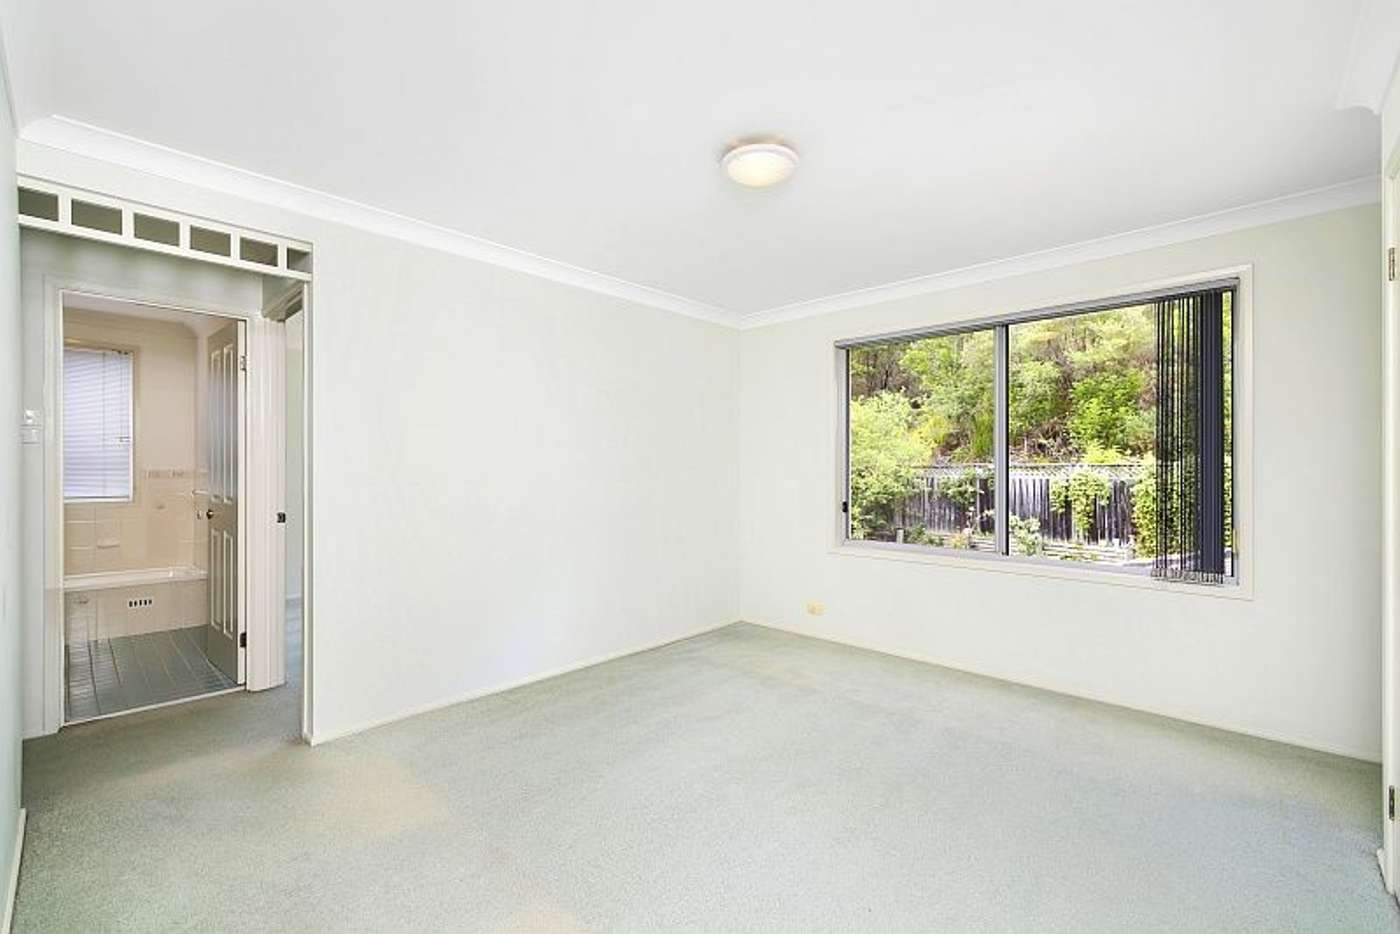 Seventh view of Homely house listing, 11 Wixstead Close, Point Clare NSW 2250